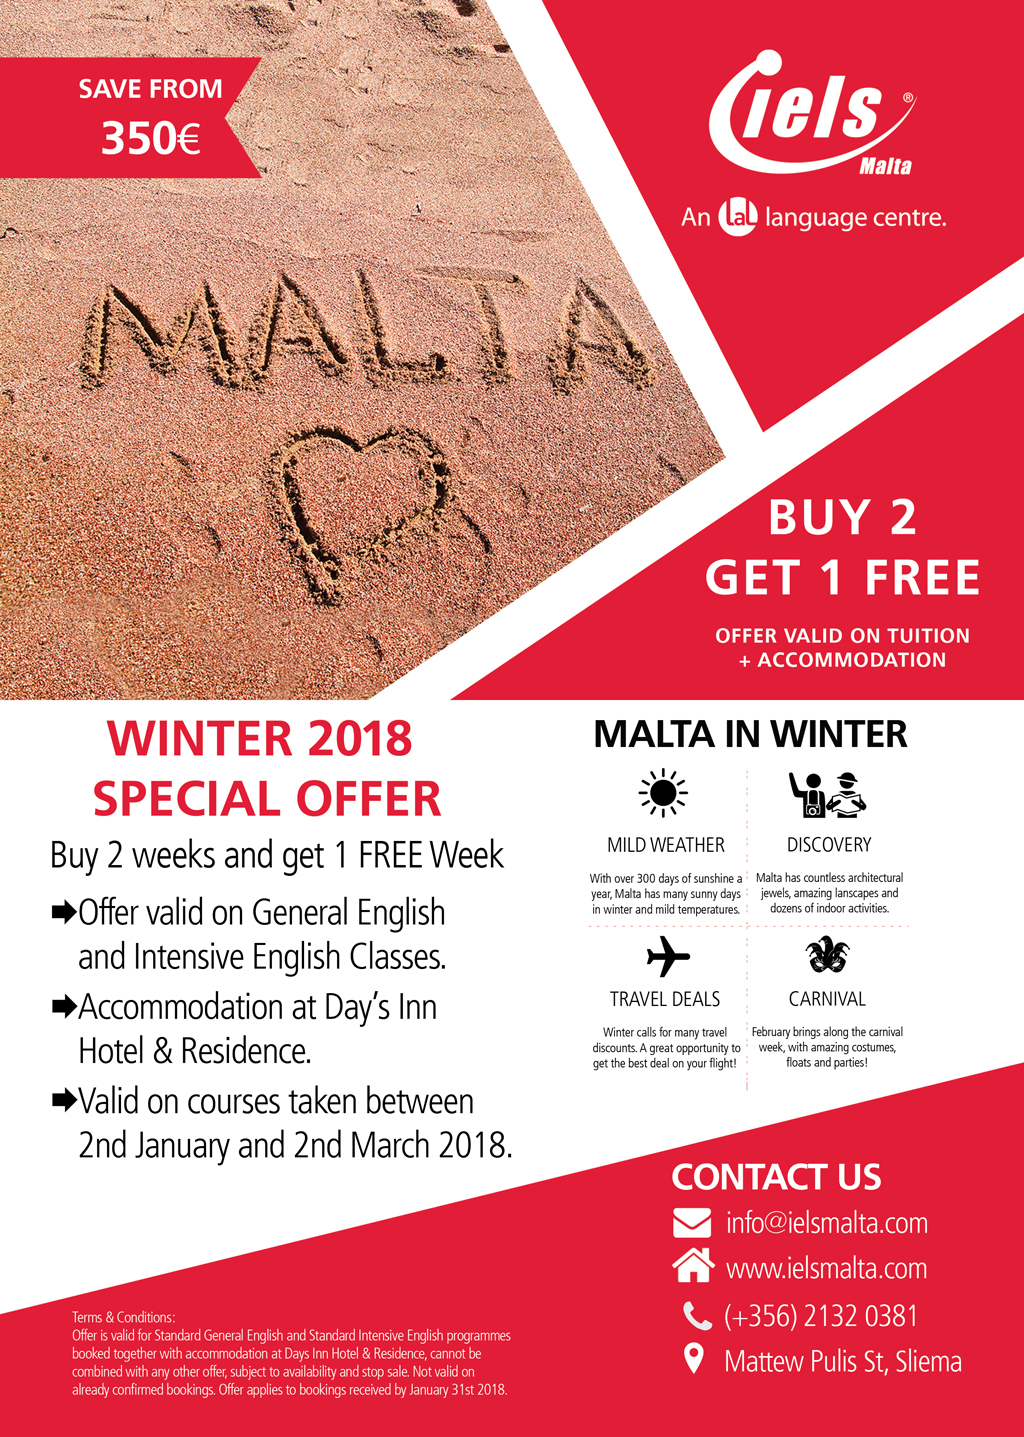 Buy 2 weeks Get 1 FREE - Winter 2018 Special Offer !